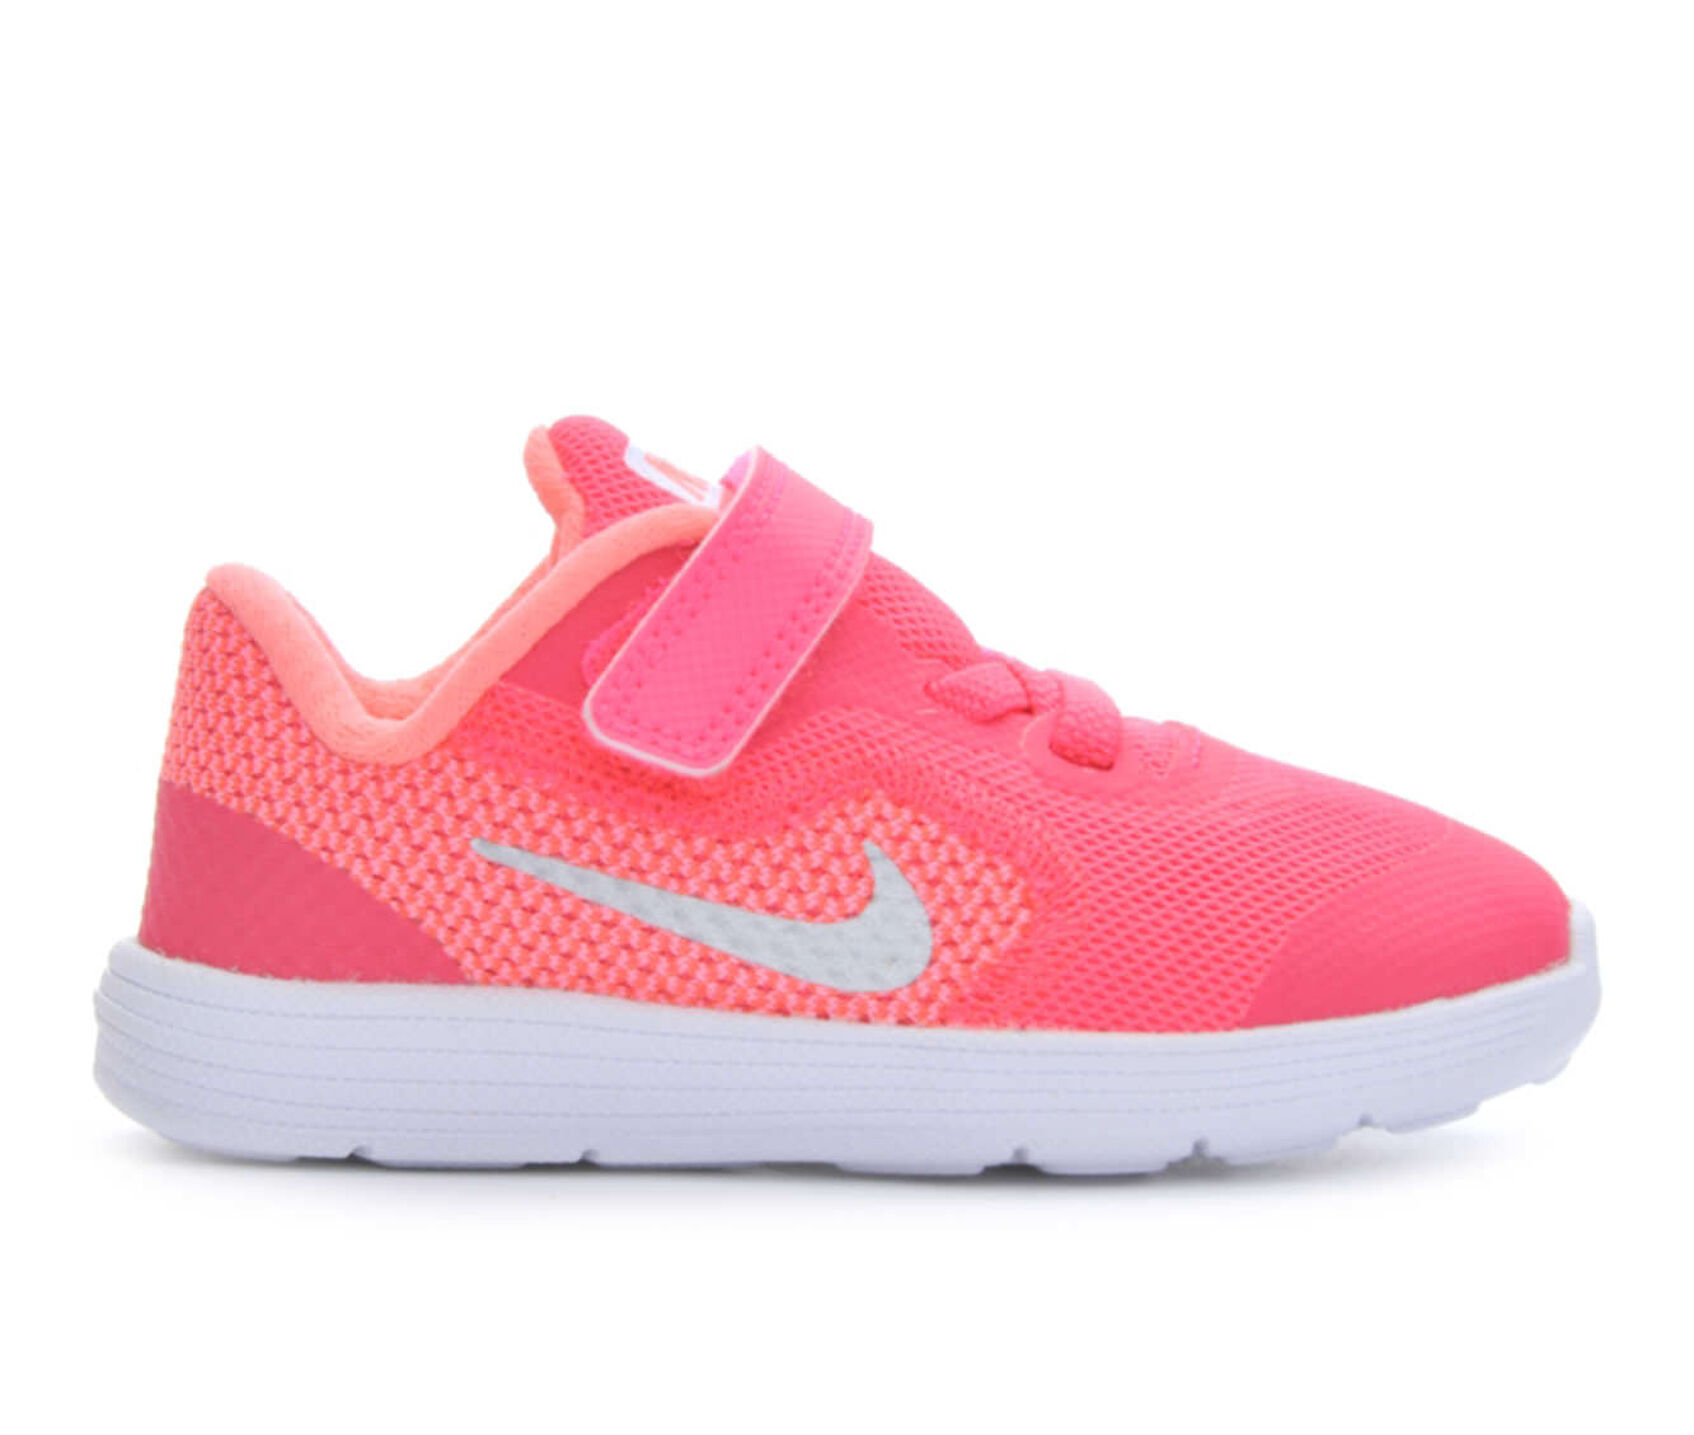 Nike Free Run Shoes For Toddlers